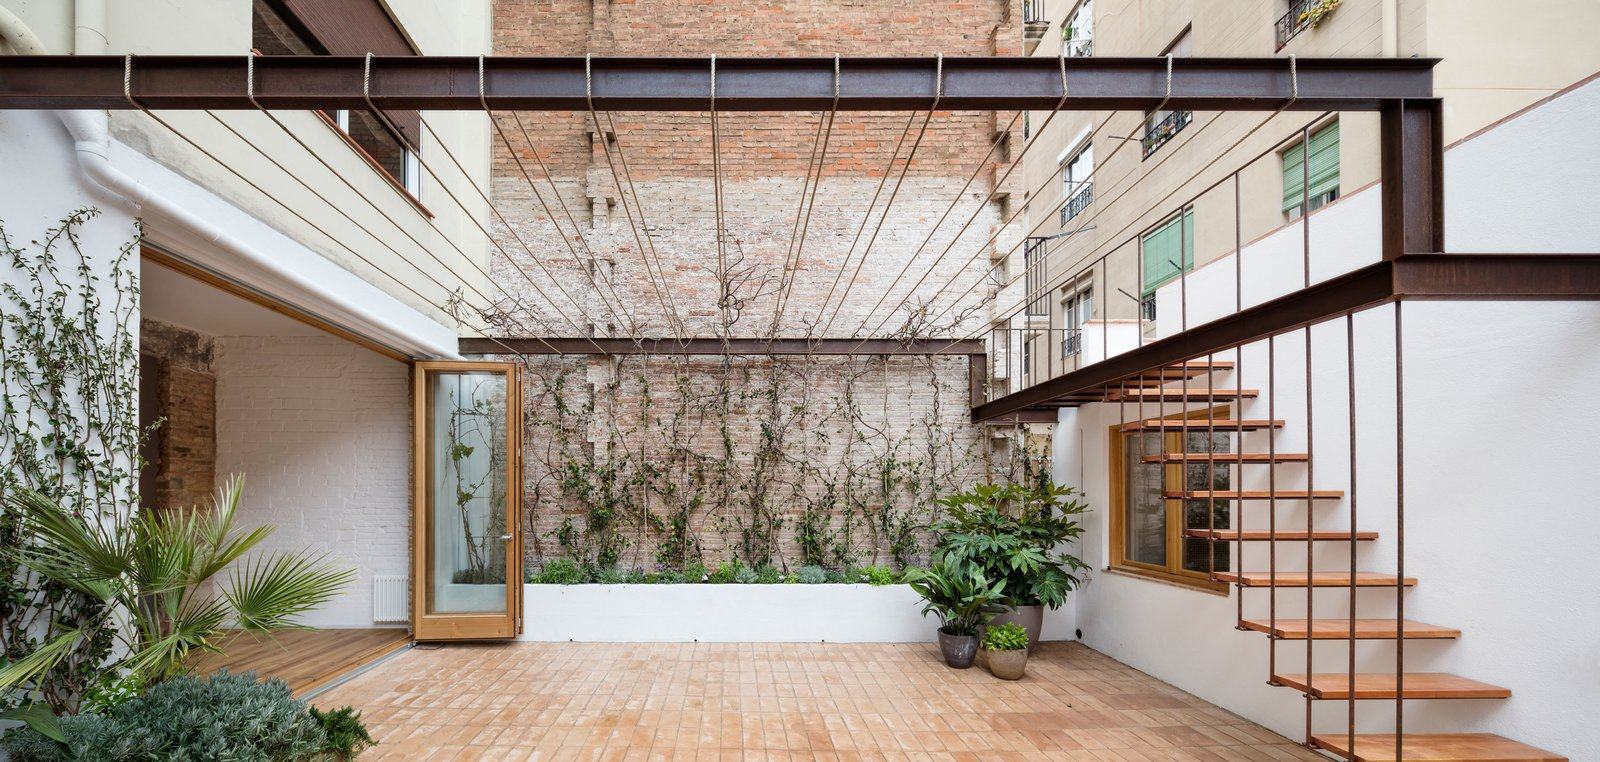 Outdoor and Large Patio, Porch, Deck  Photo 13 of 14 in A Dramatic Apartment Renovation in Barcelona Features Salvaged Tile and Brick